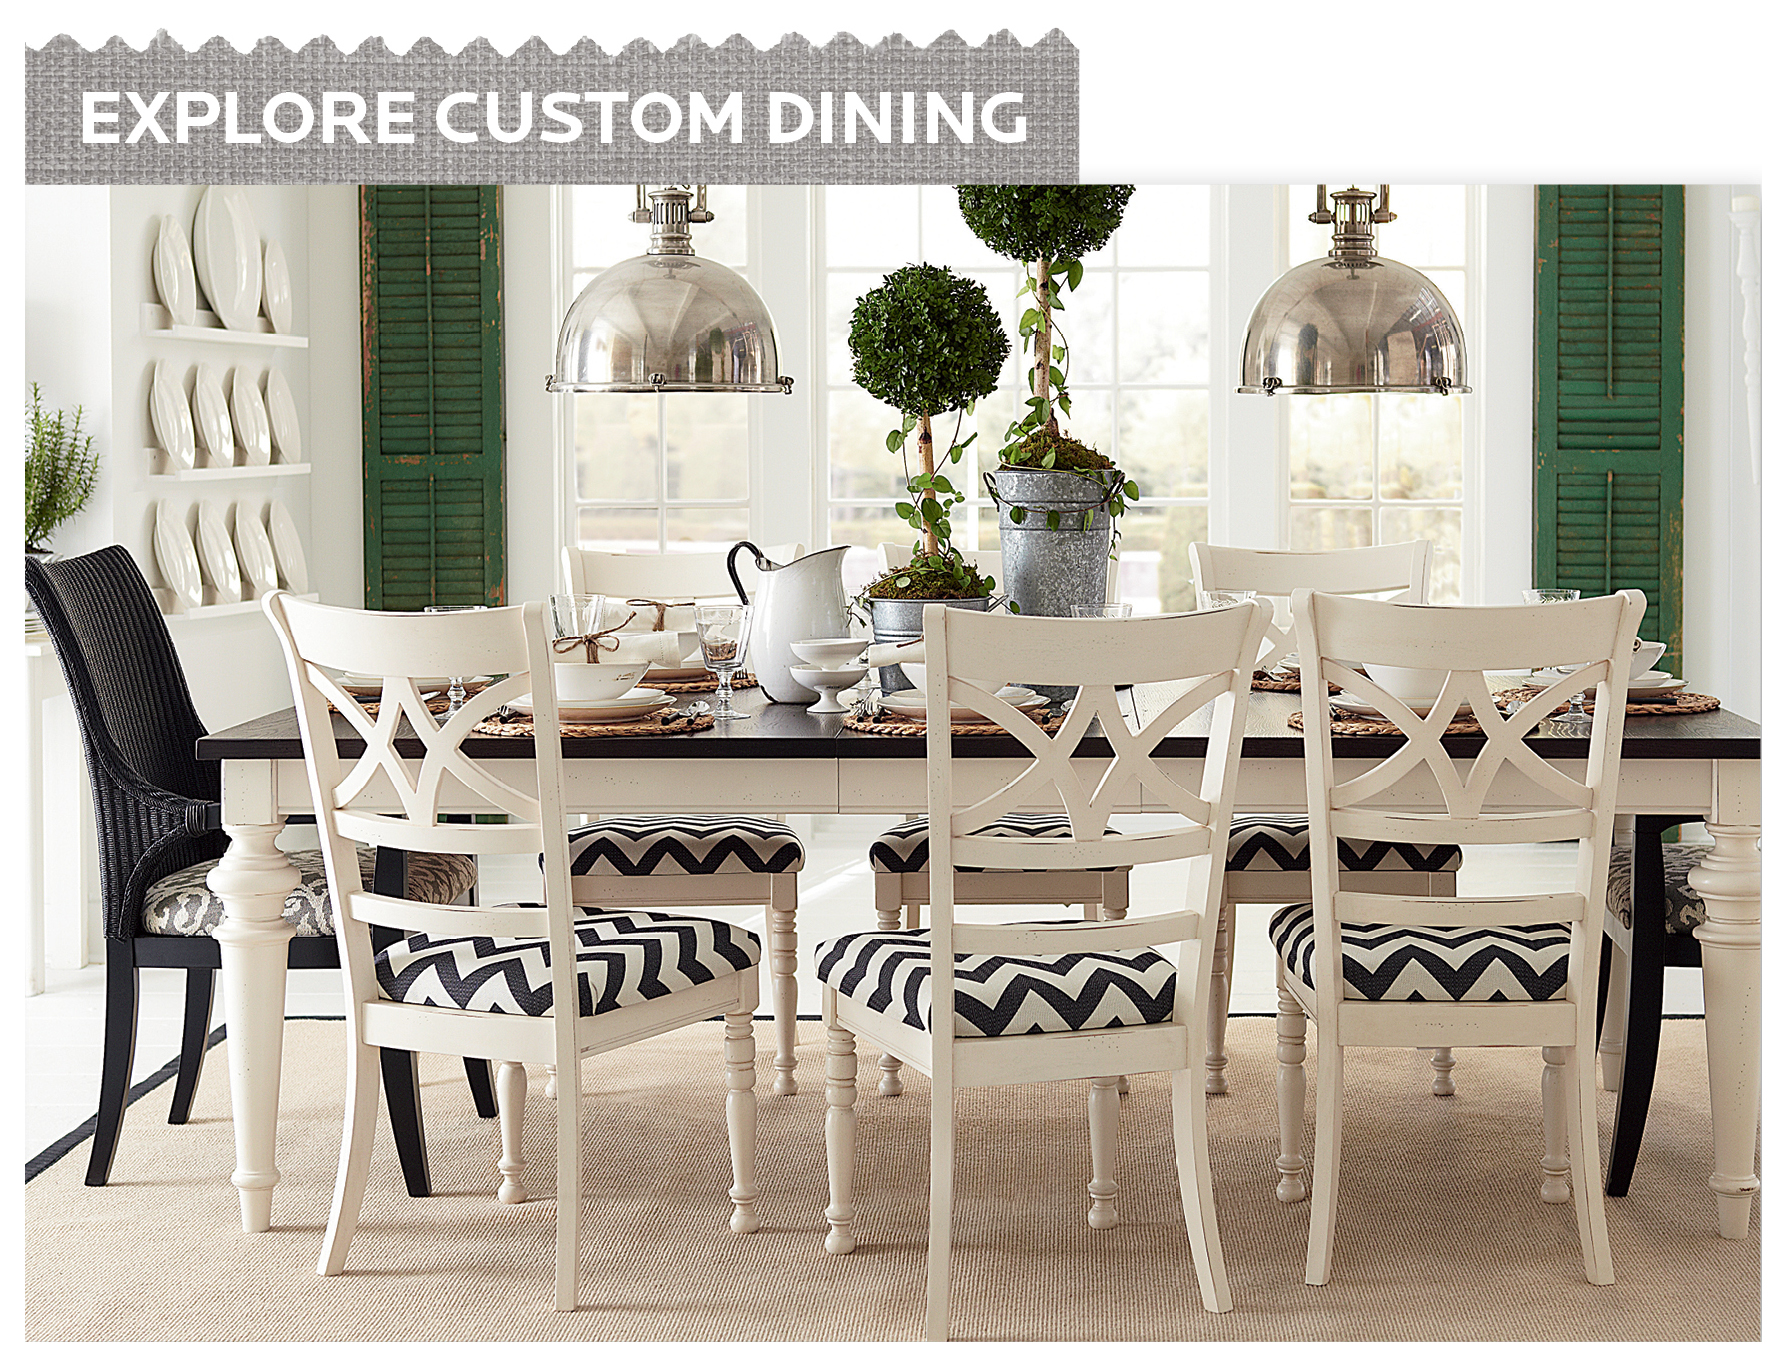 dining room design with Sprintz Furniture with dining table with chevron pattern on seat matched with white floor plus chandelier ideas